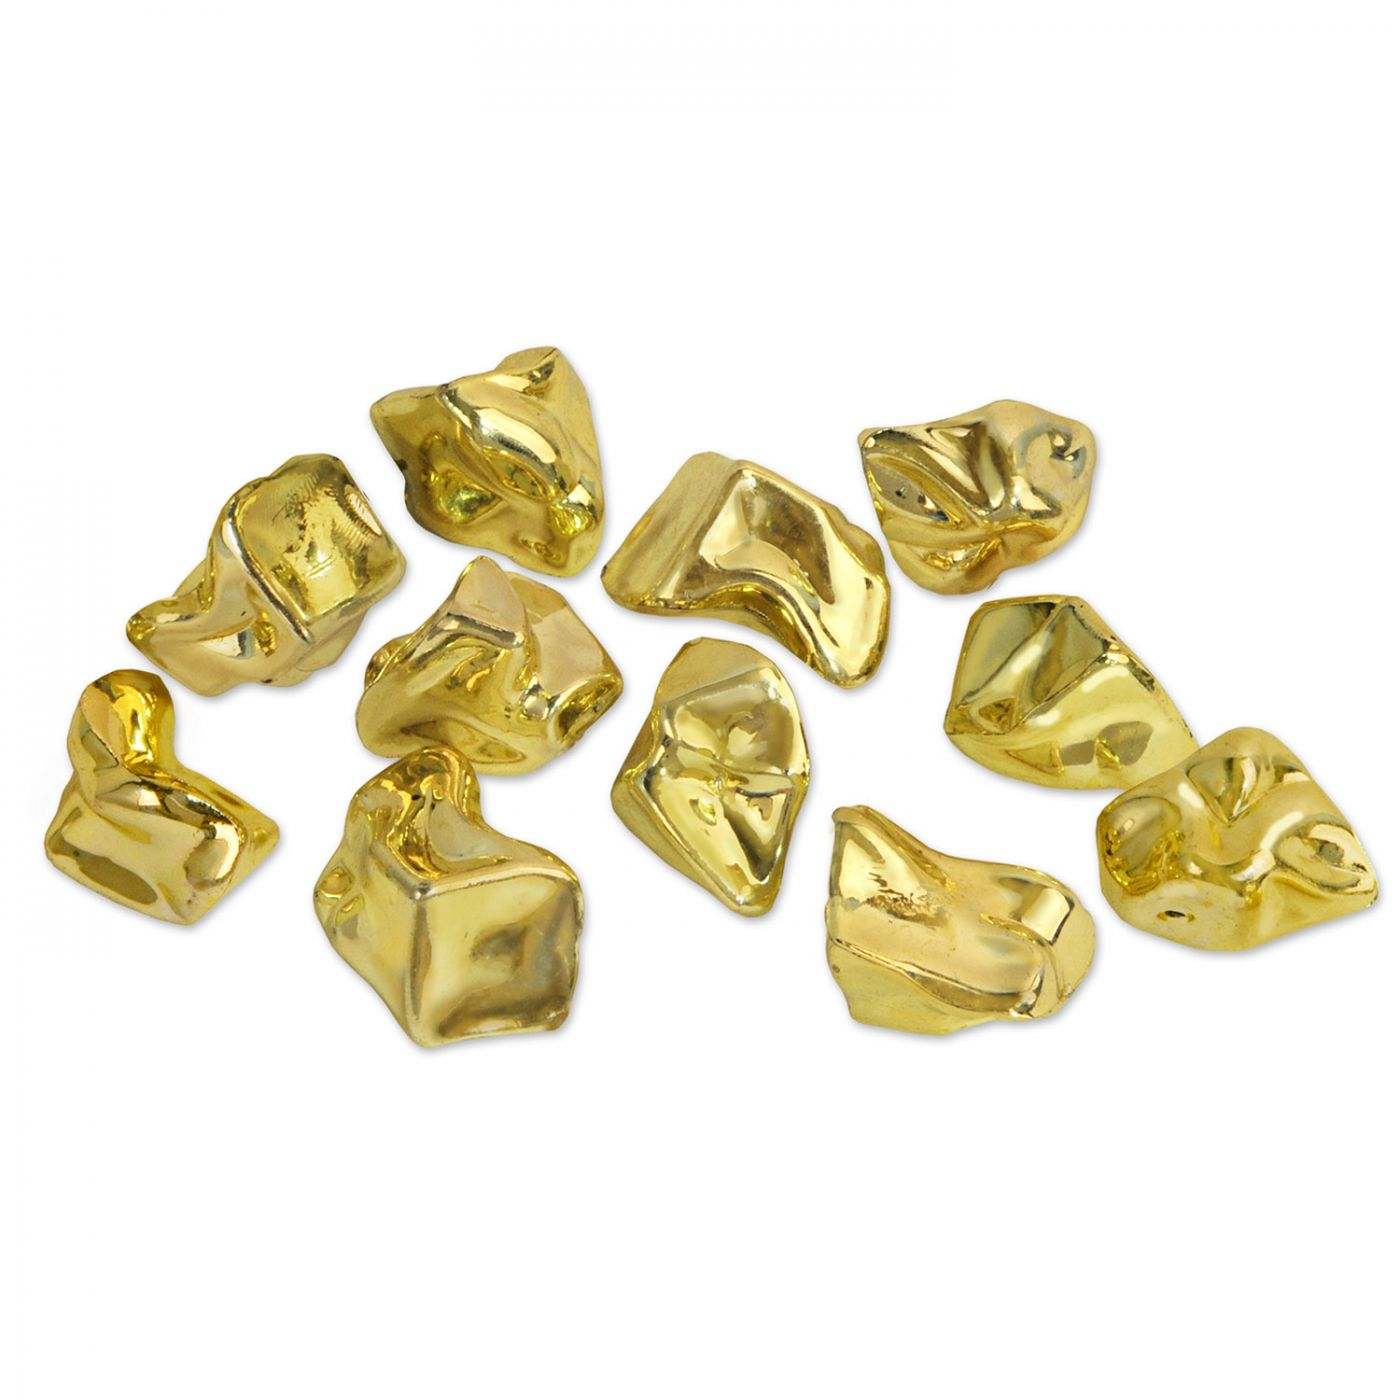 Plastic Gold Nuggets (24) image